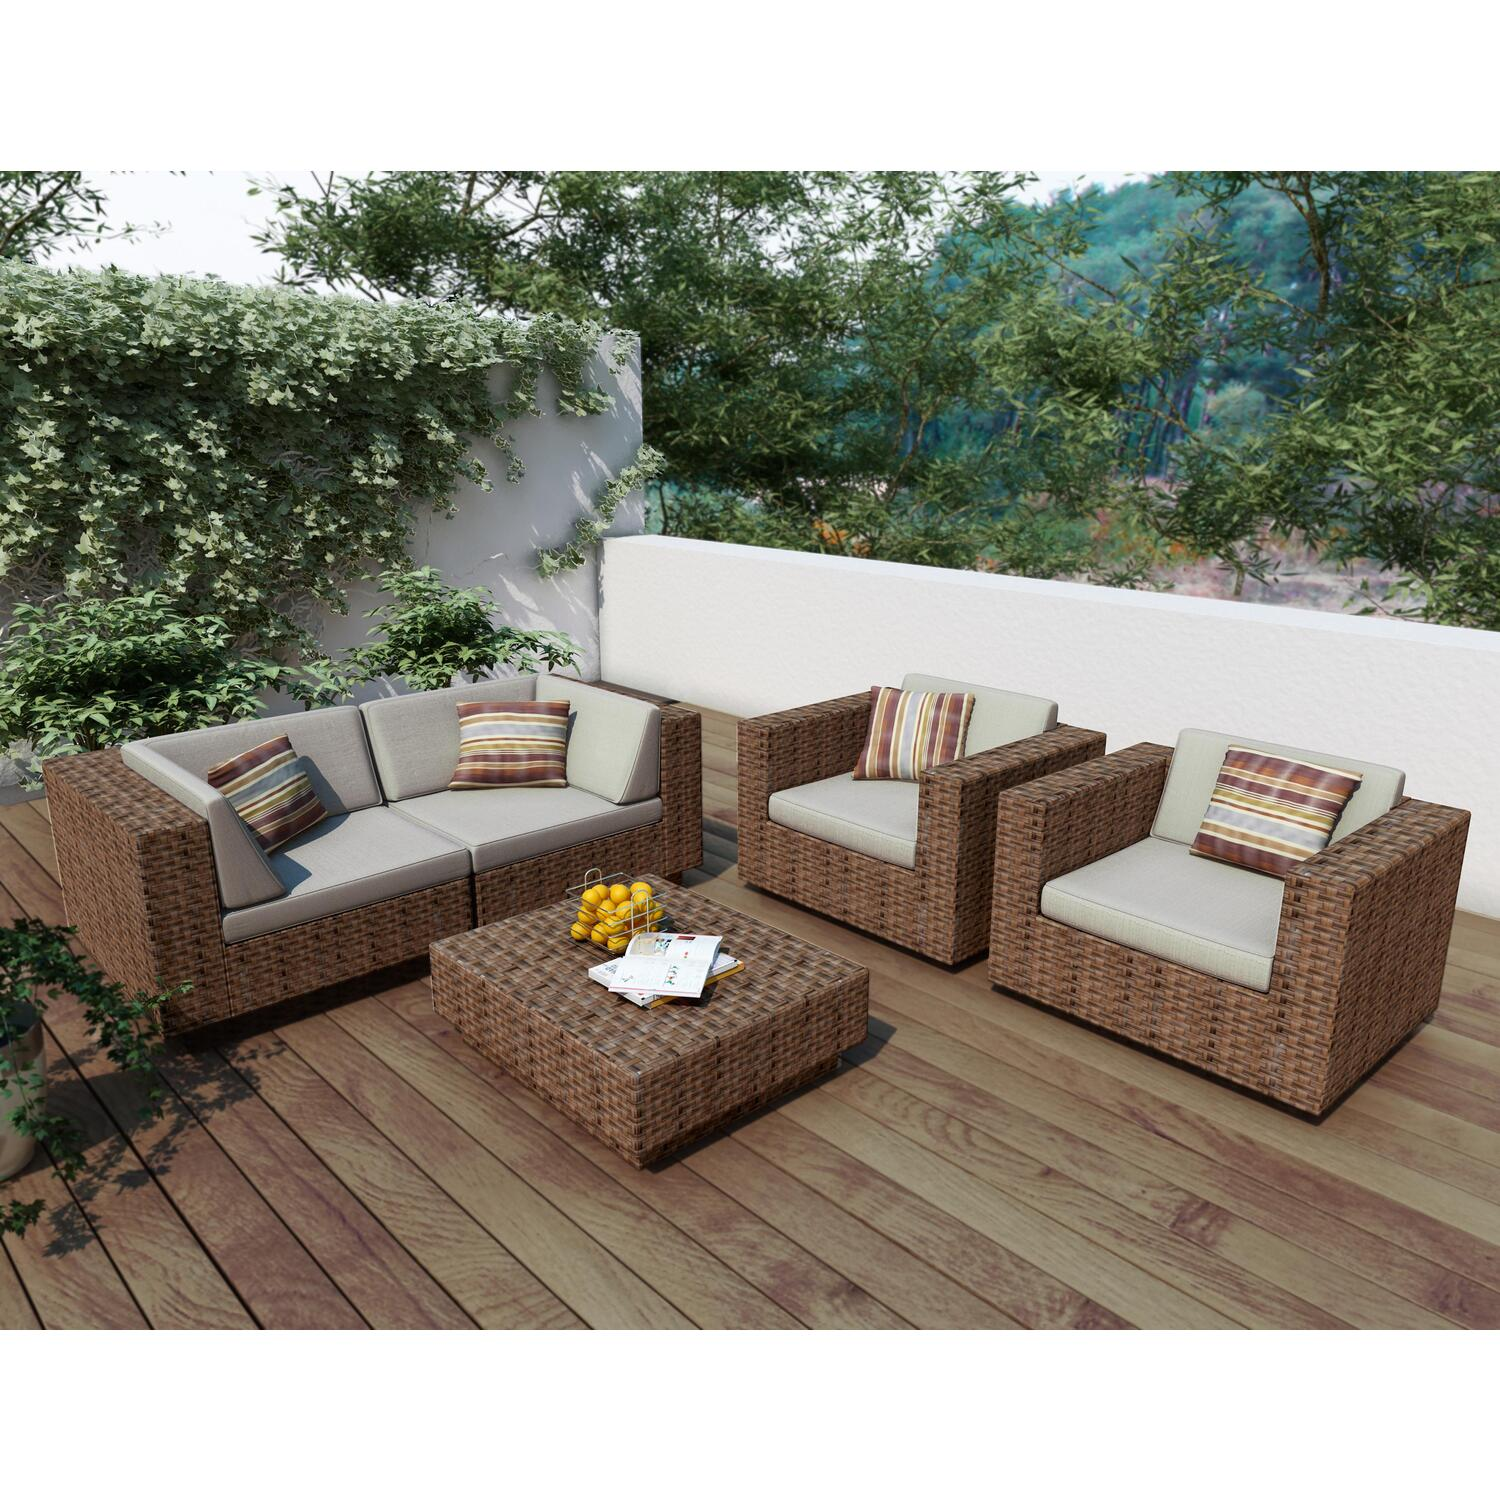 Outdoor Patio Decor Park Terrace 5 Piece Sofa Patio Set Ojcommerce